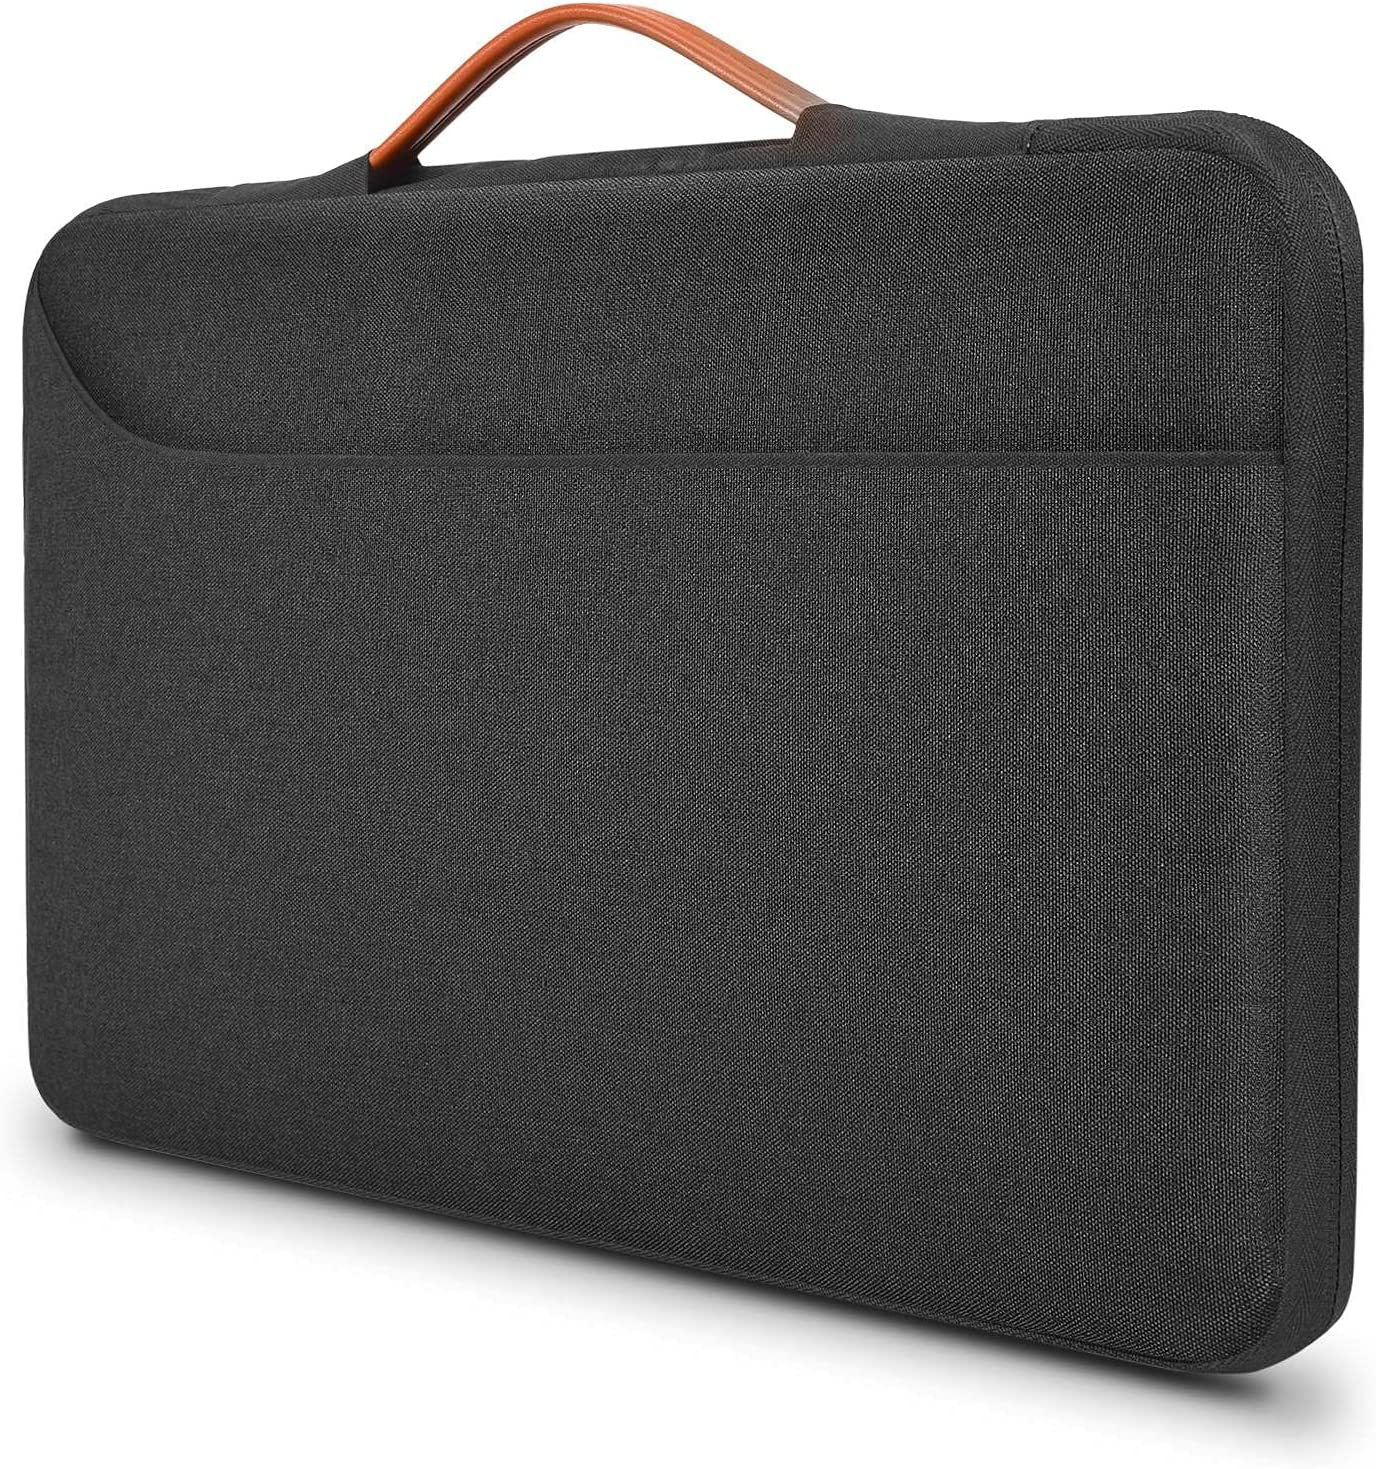 15.6 inch Laptop Case Water Resistant Computer Briefcase Bag for HP Envy X360 2-in-1 15.6